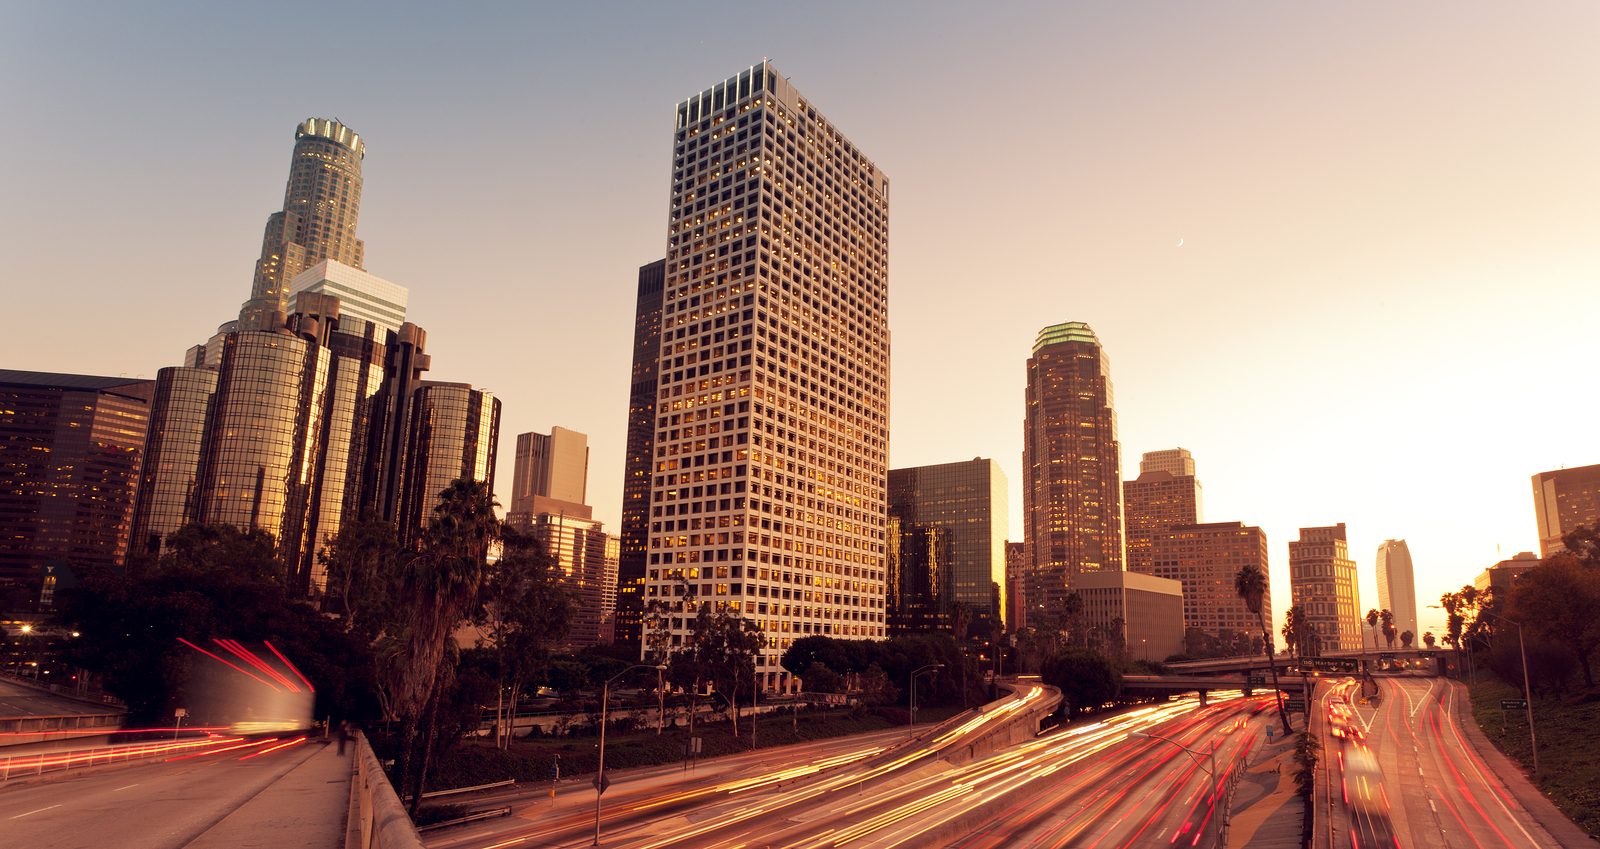 Los Angeles, Urban City at Sunset with Freeway Trafic